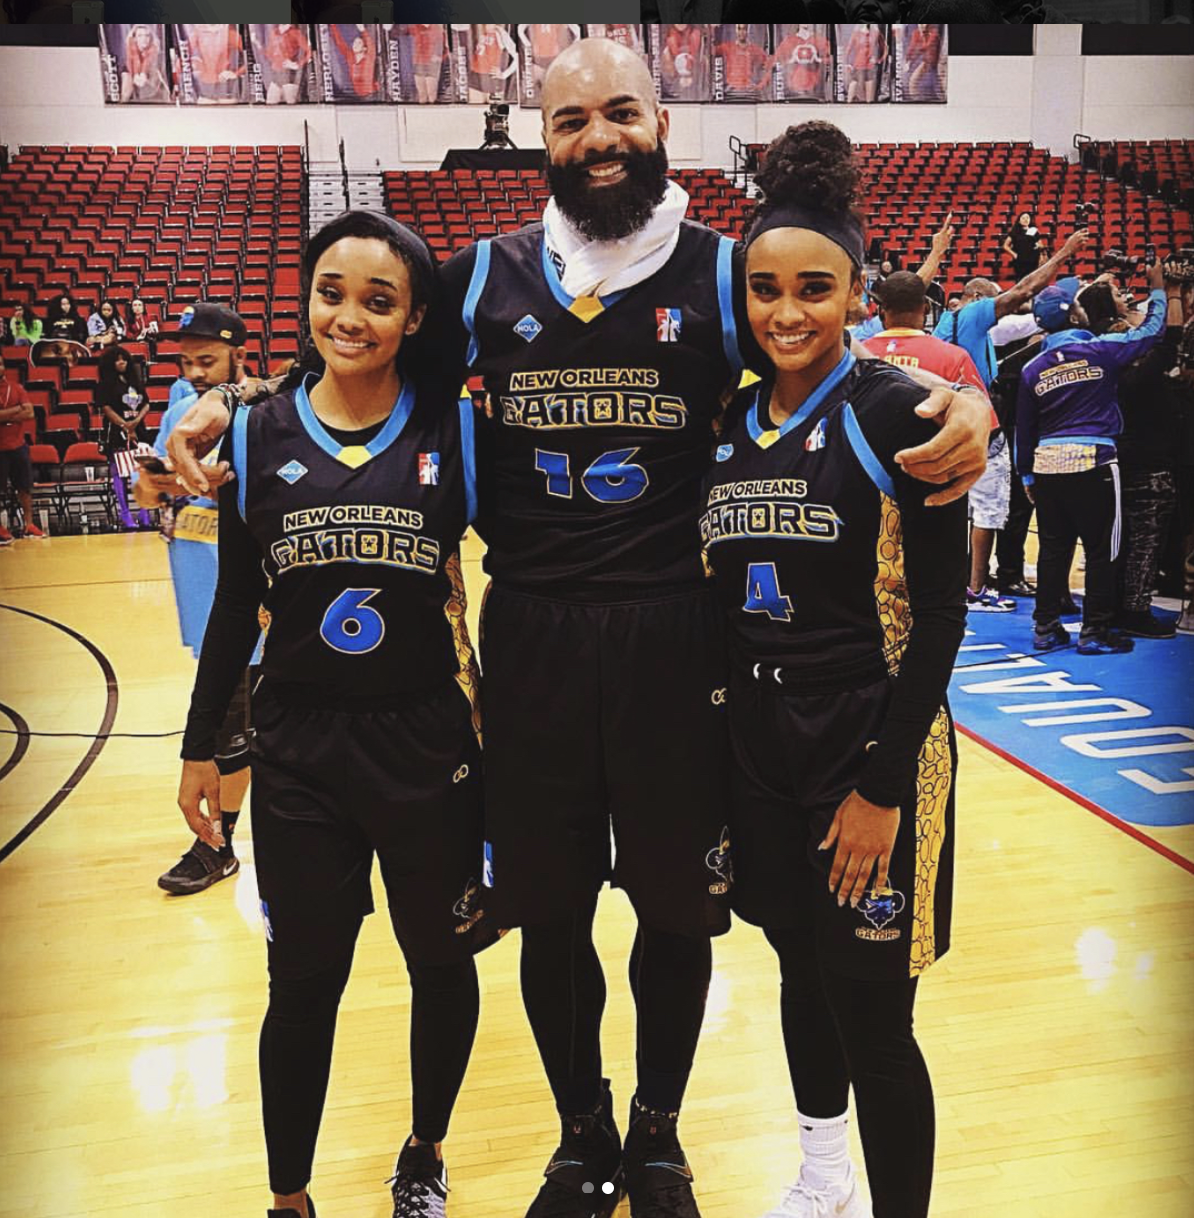 e26c79929 Carlos boozer with the Gonzalez Twins rocking Wooter Apparel uniforms in  Las Vegas at the launch